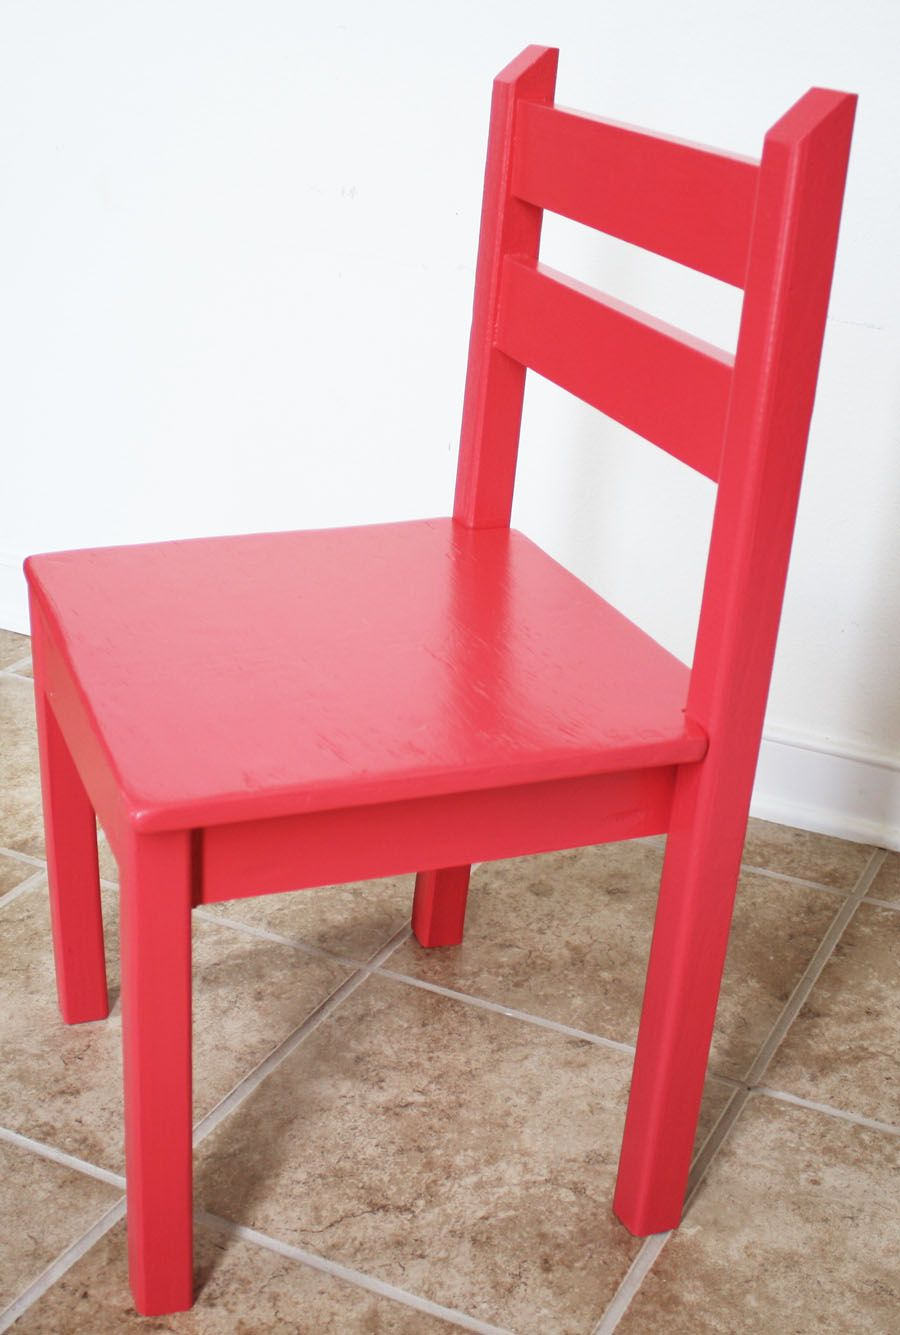 Kiddie Chairs Do It Yourself Home Projects from Ana